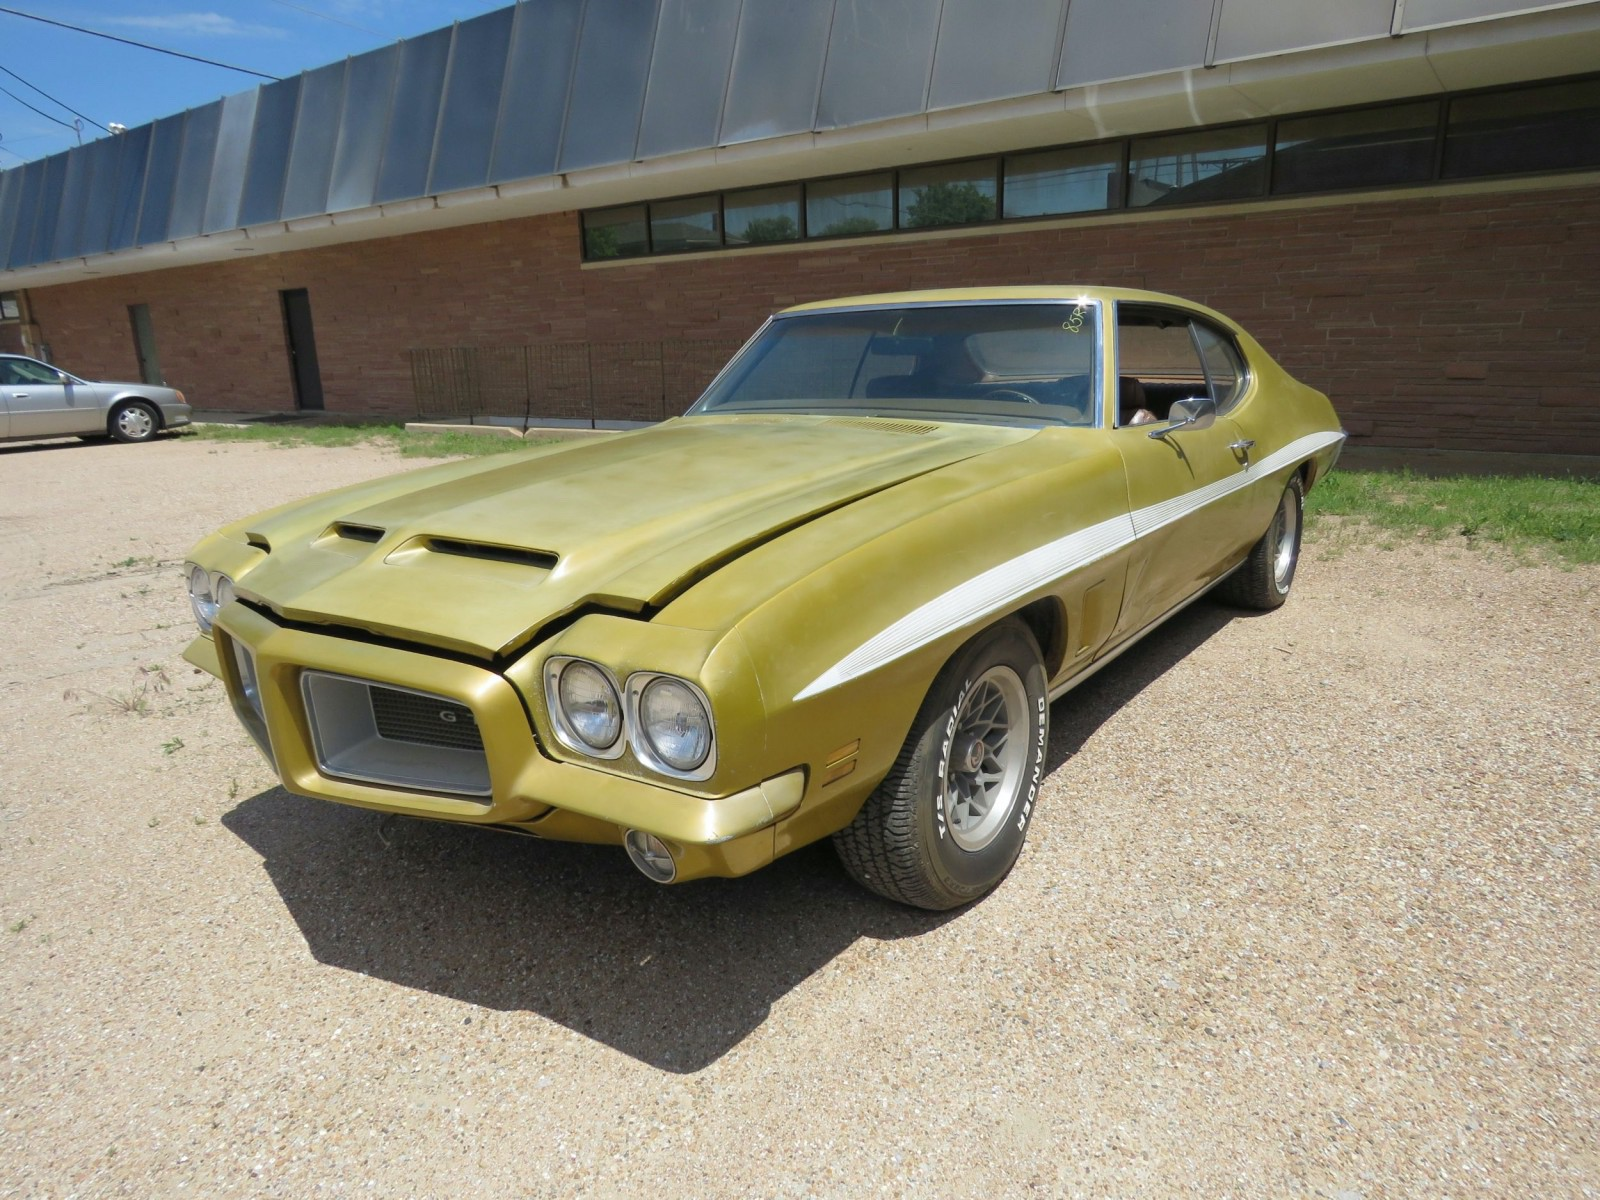 bob-regehr-collection-1972-pontiac-gto-1